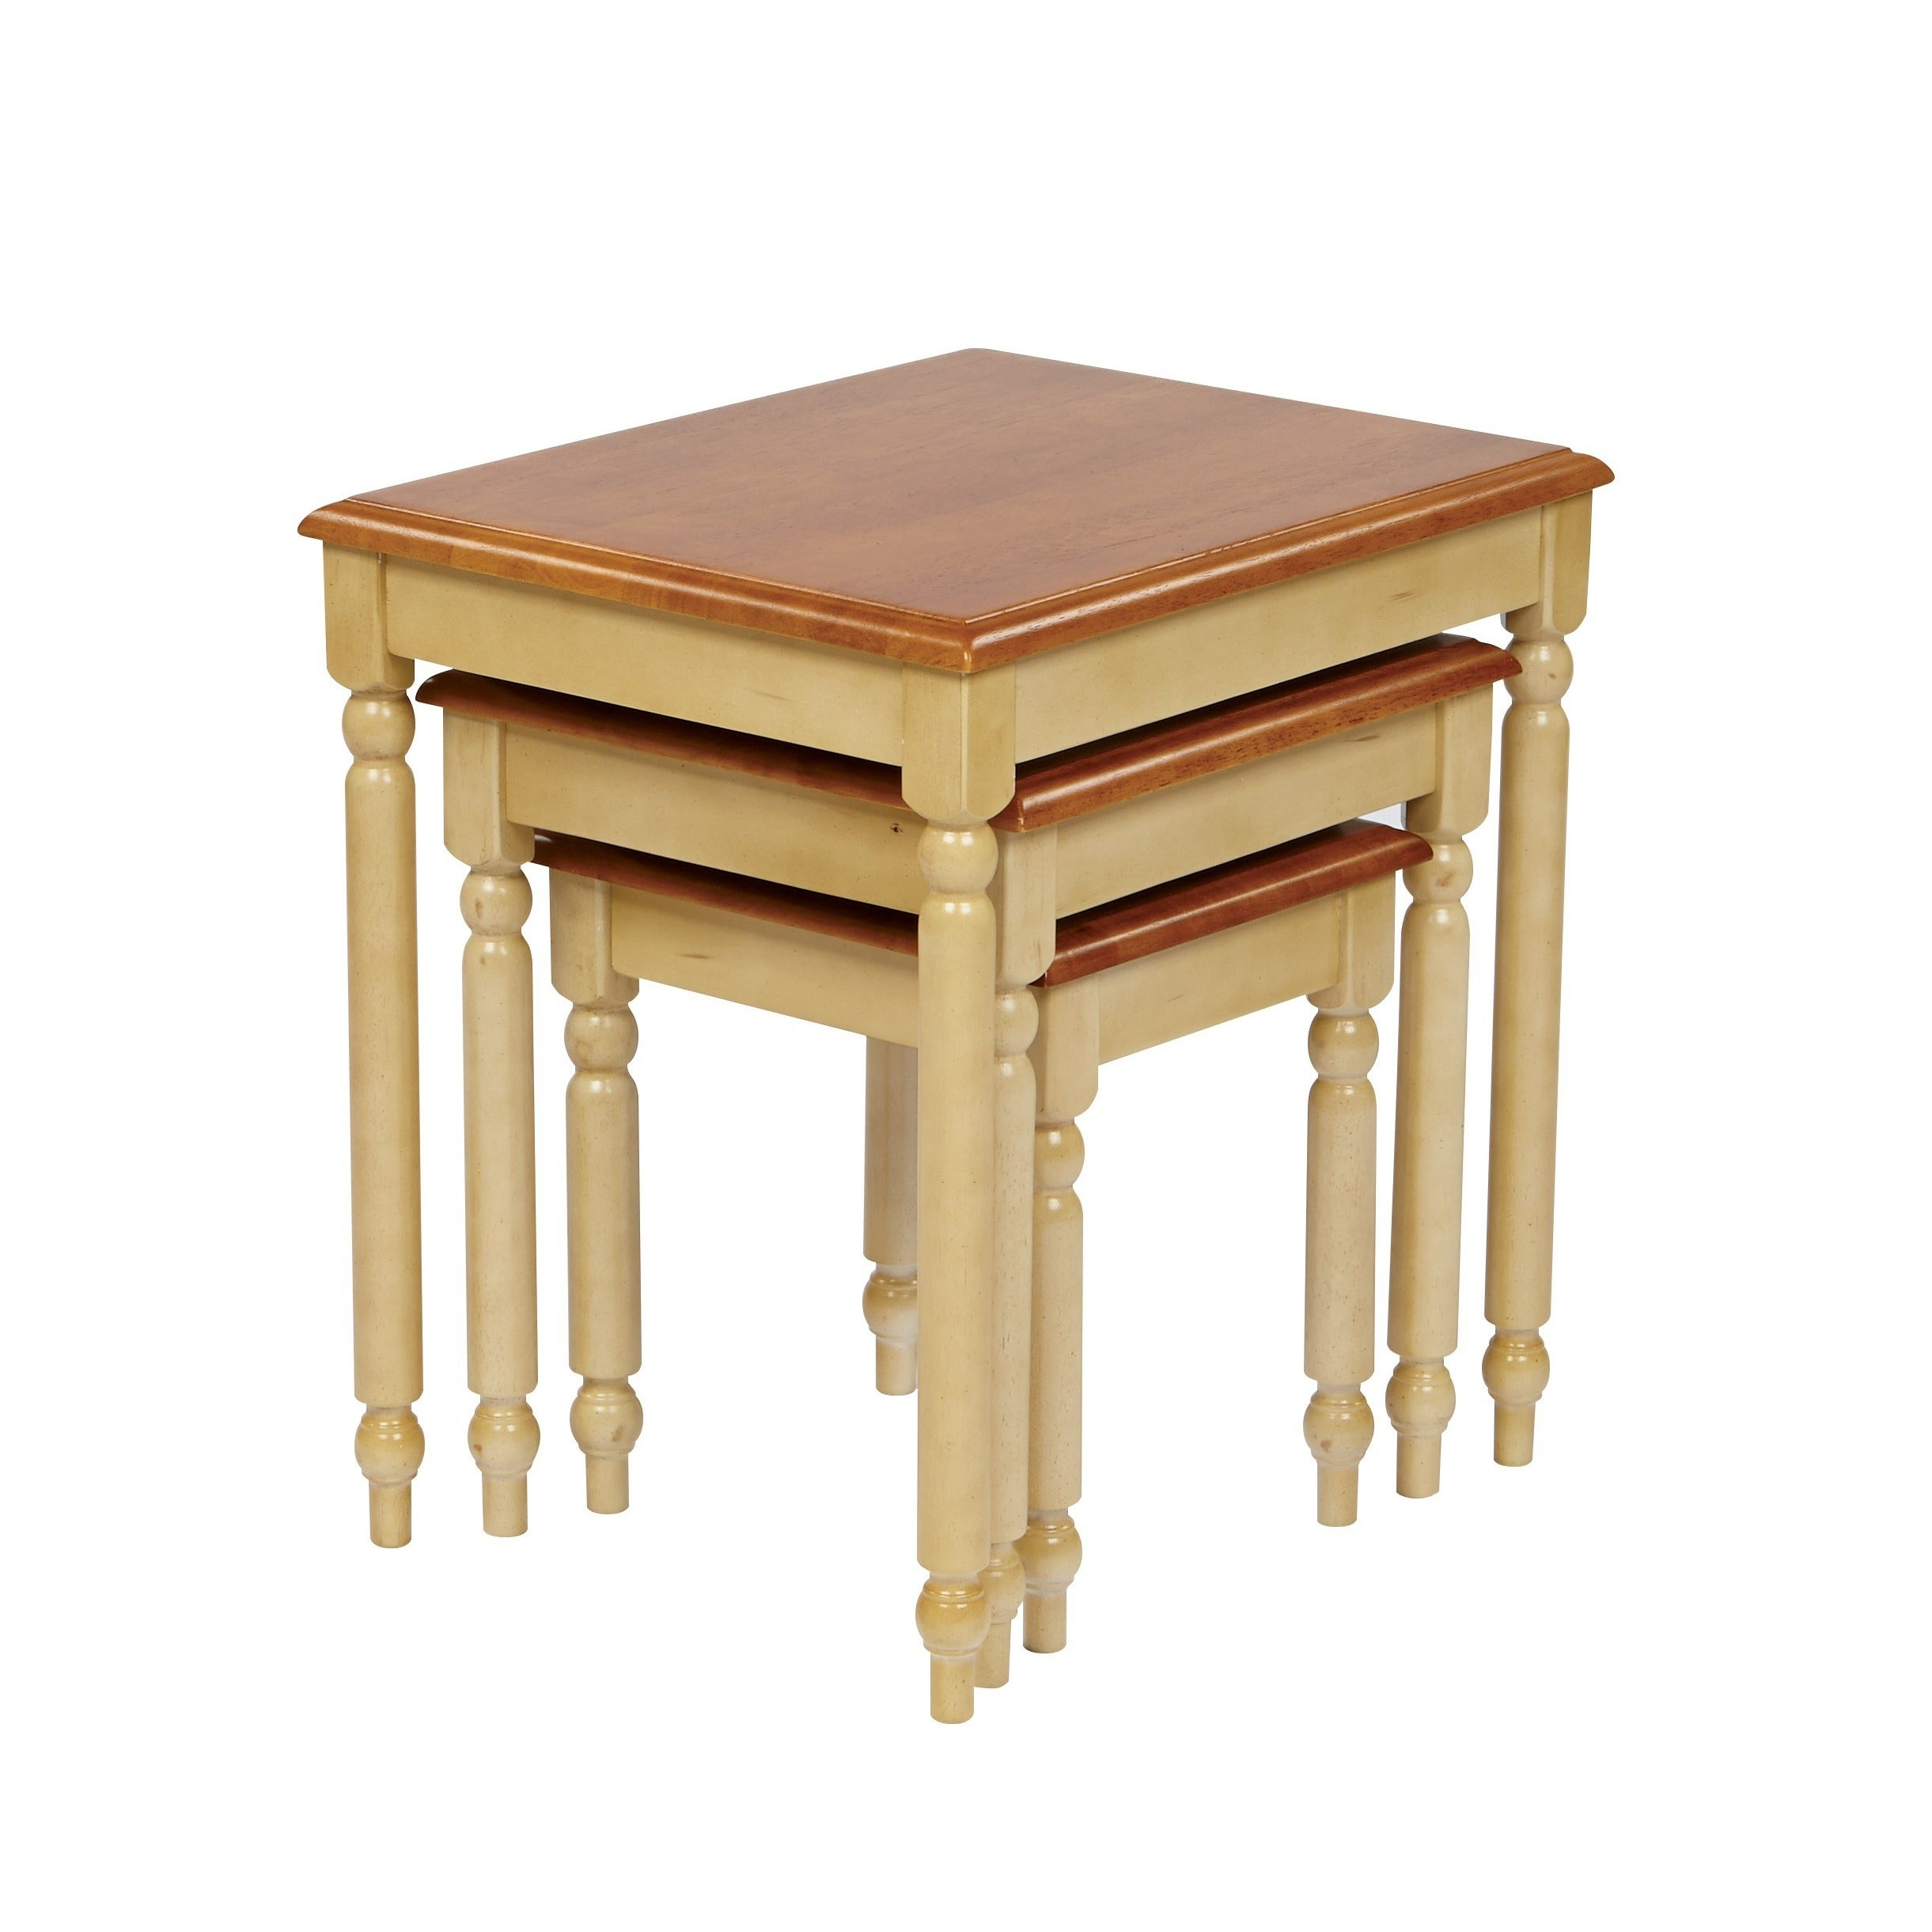 Admirable Osp Home Furnishings Country Cottage Buttermilk 3 Piece Nesting Table Set Home Interior And Landscaping Oversignezvosmurscom